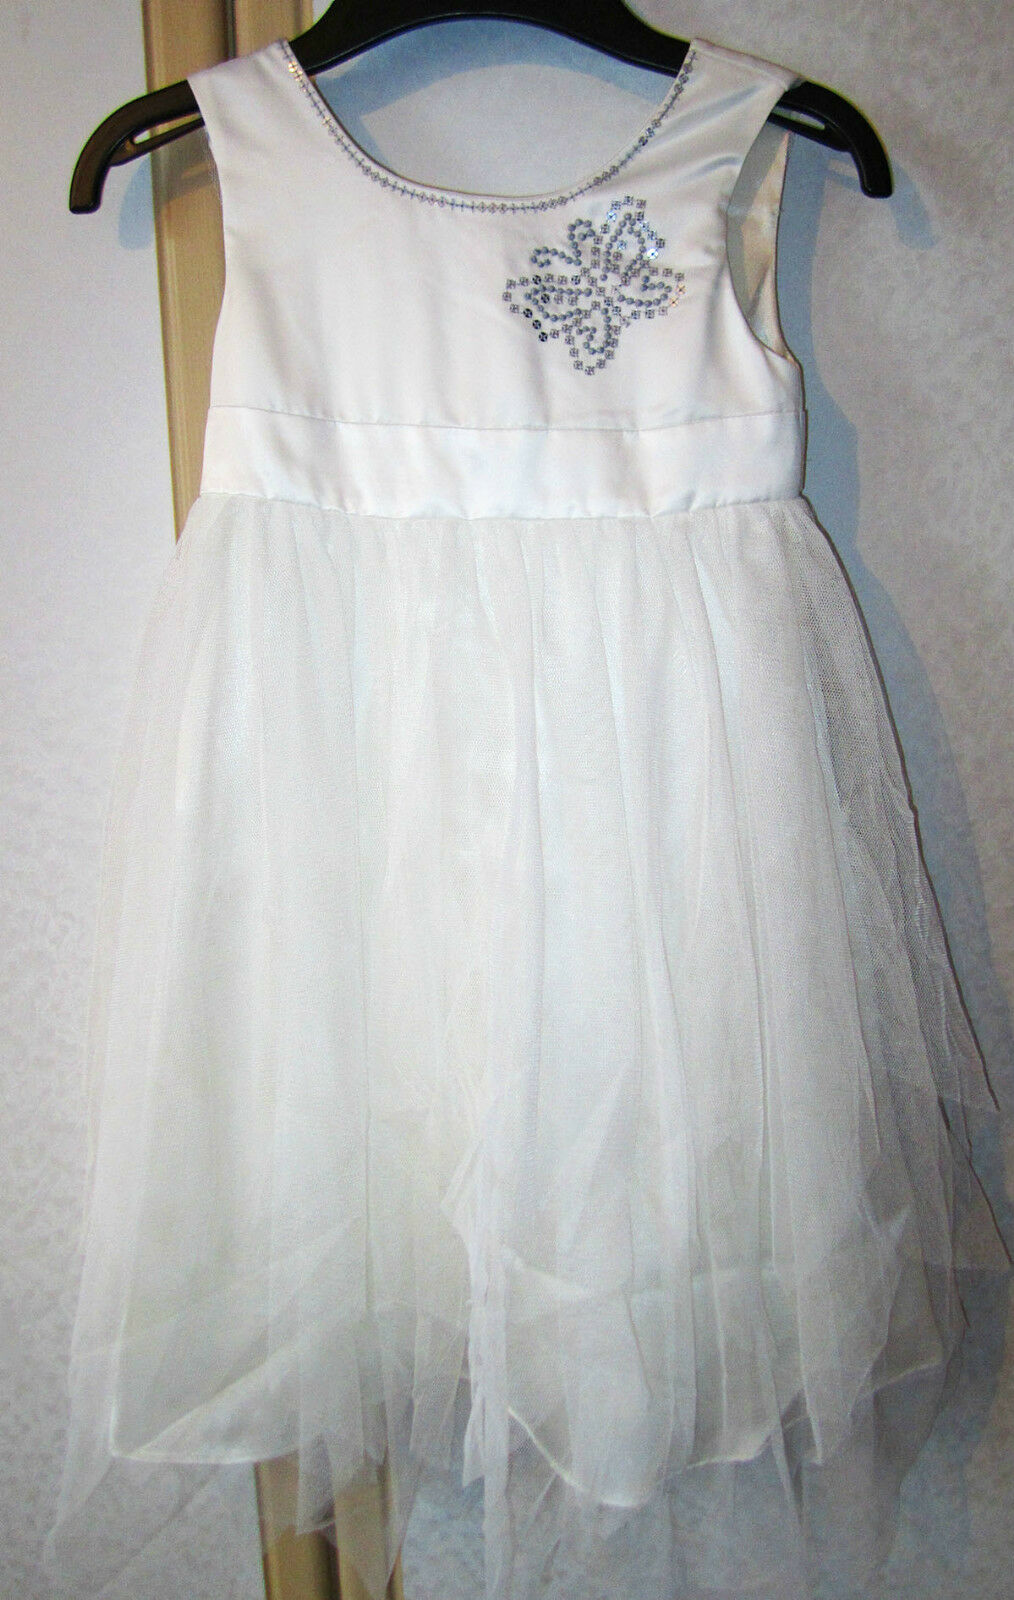 M&S Autograph Exclusive Cream Bridesmaid / Flower Girl Dress Ages 3-4 & 4-5 NWT